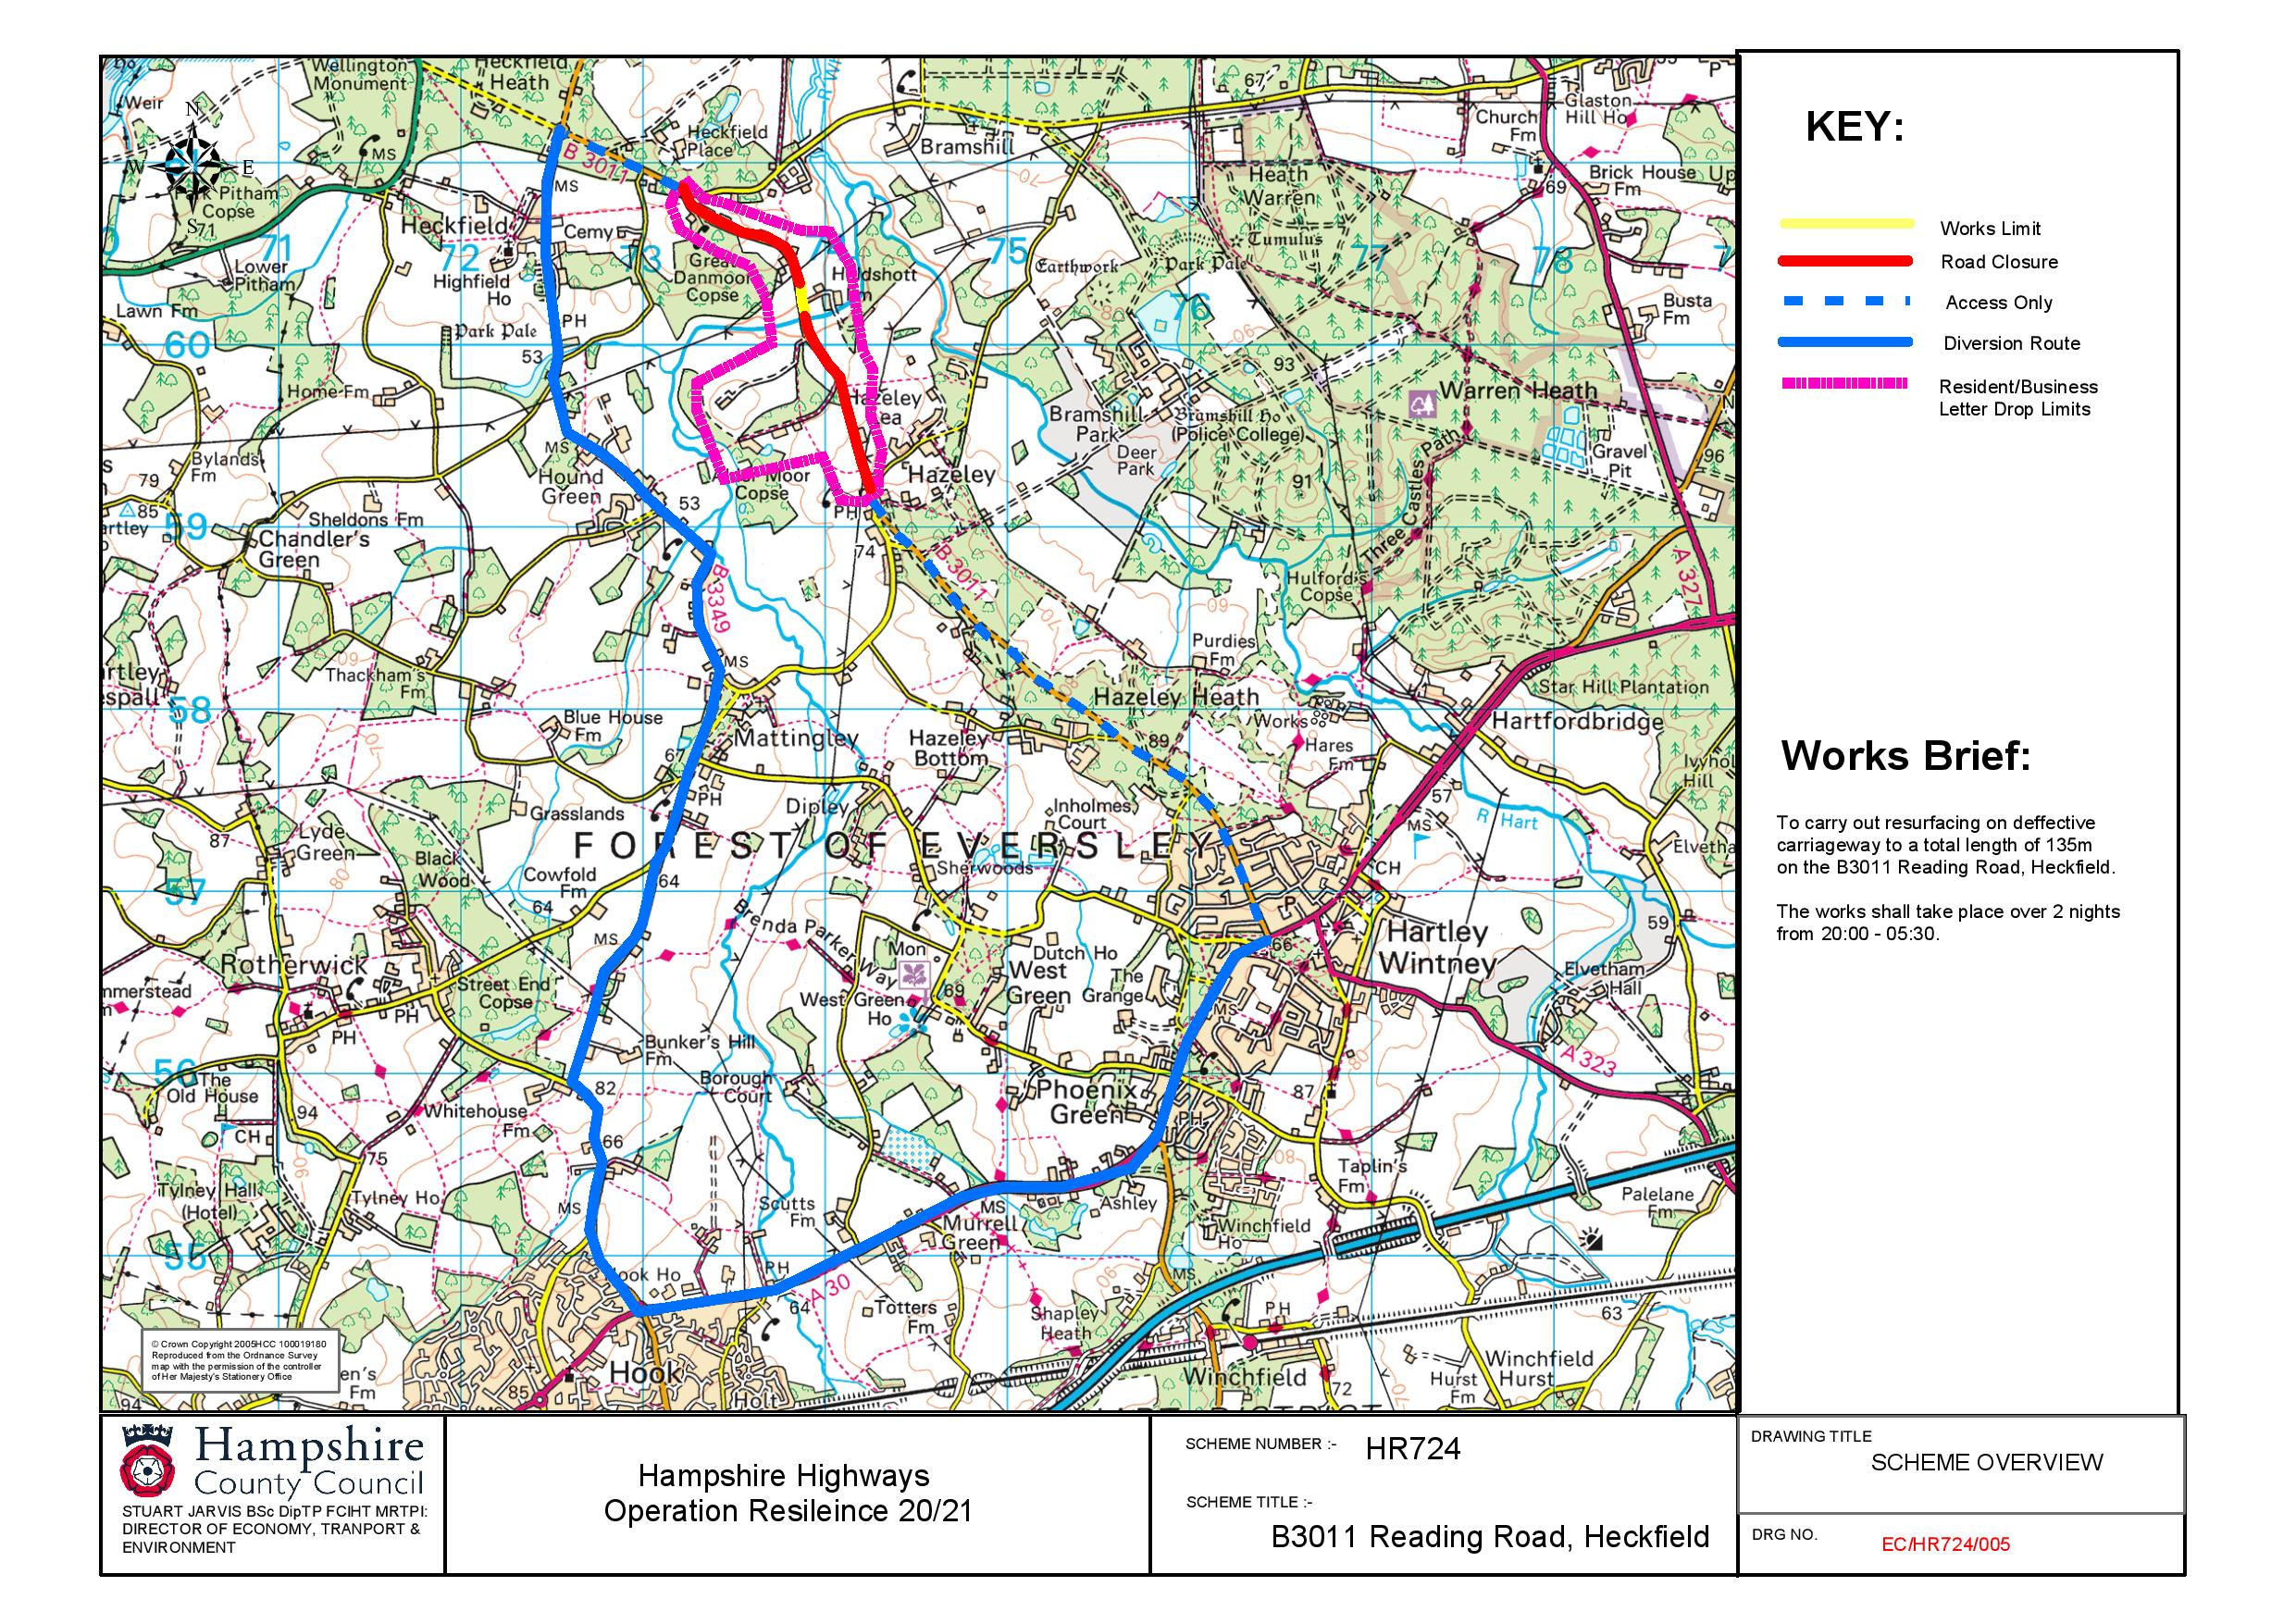 Map of Roadworks on B3011 Reading Road, Heckfield (HR7724)